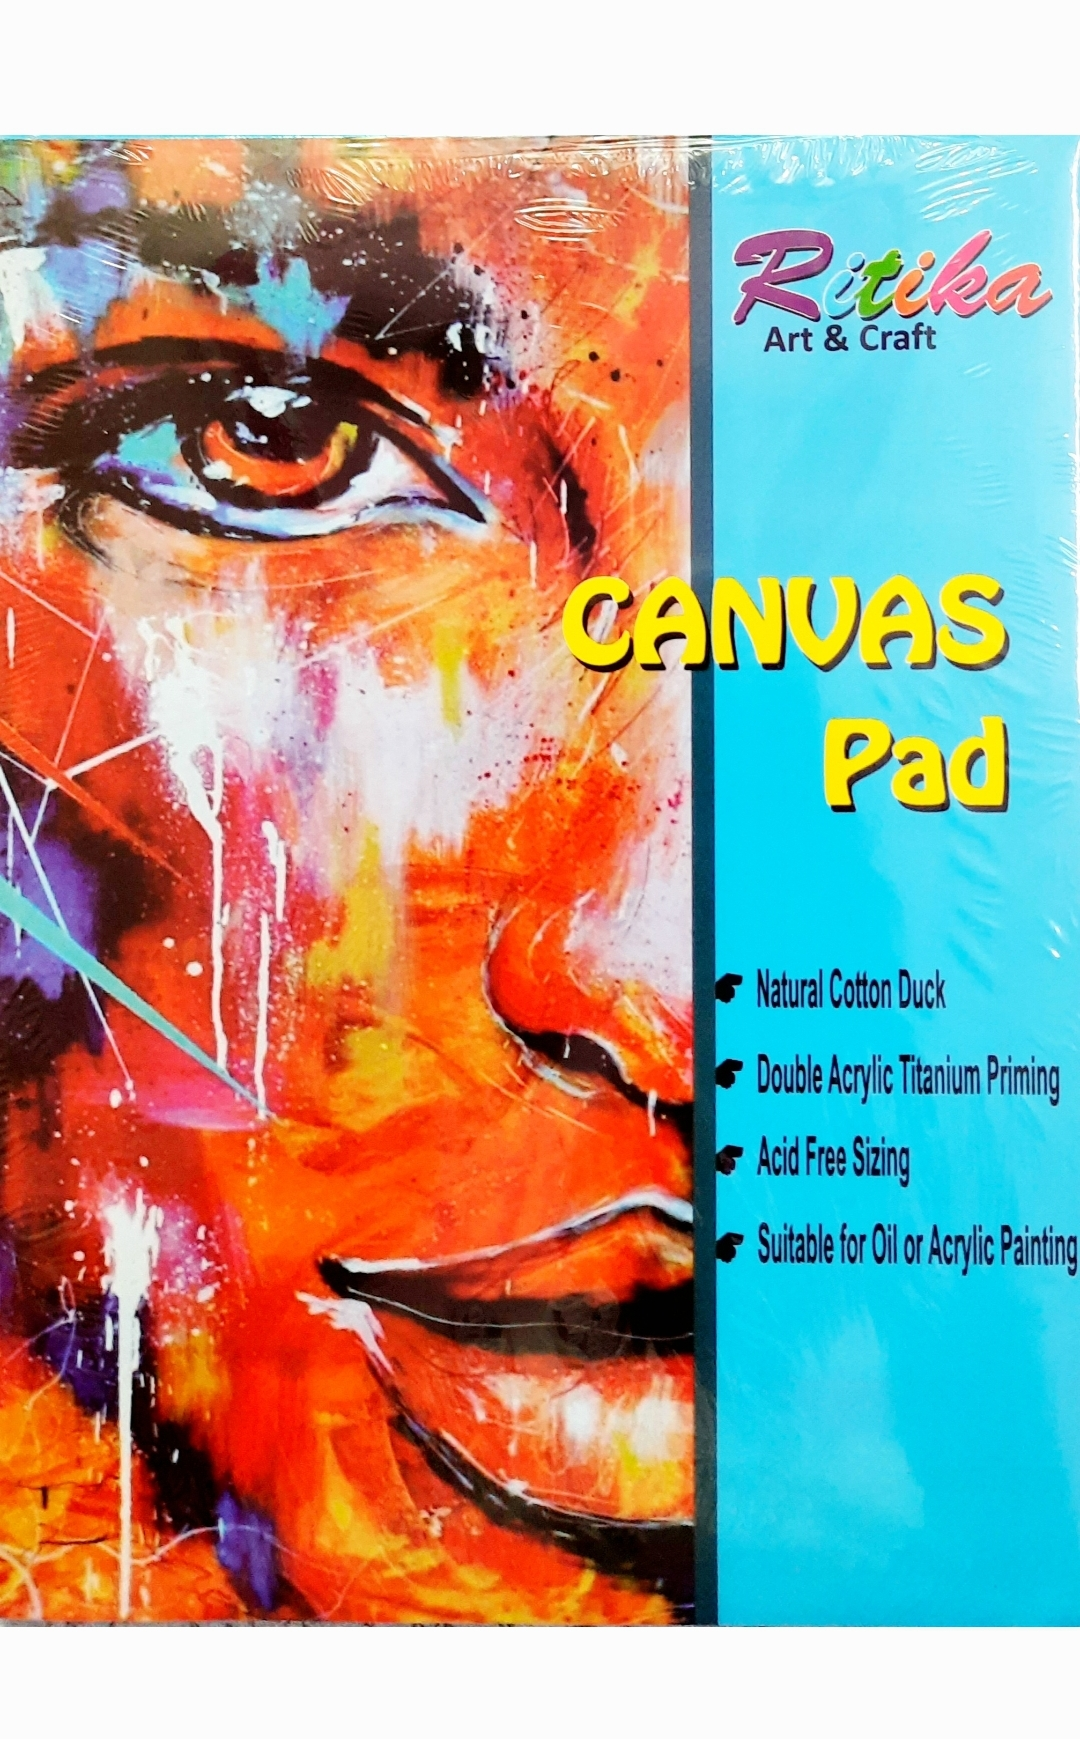 Ritika Art & Craft Canvas Pad 9X12 Inch with 10 Sheets (Pack of 1 Ped)